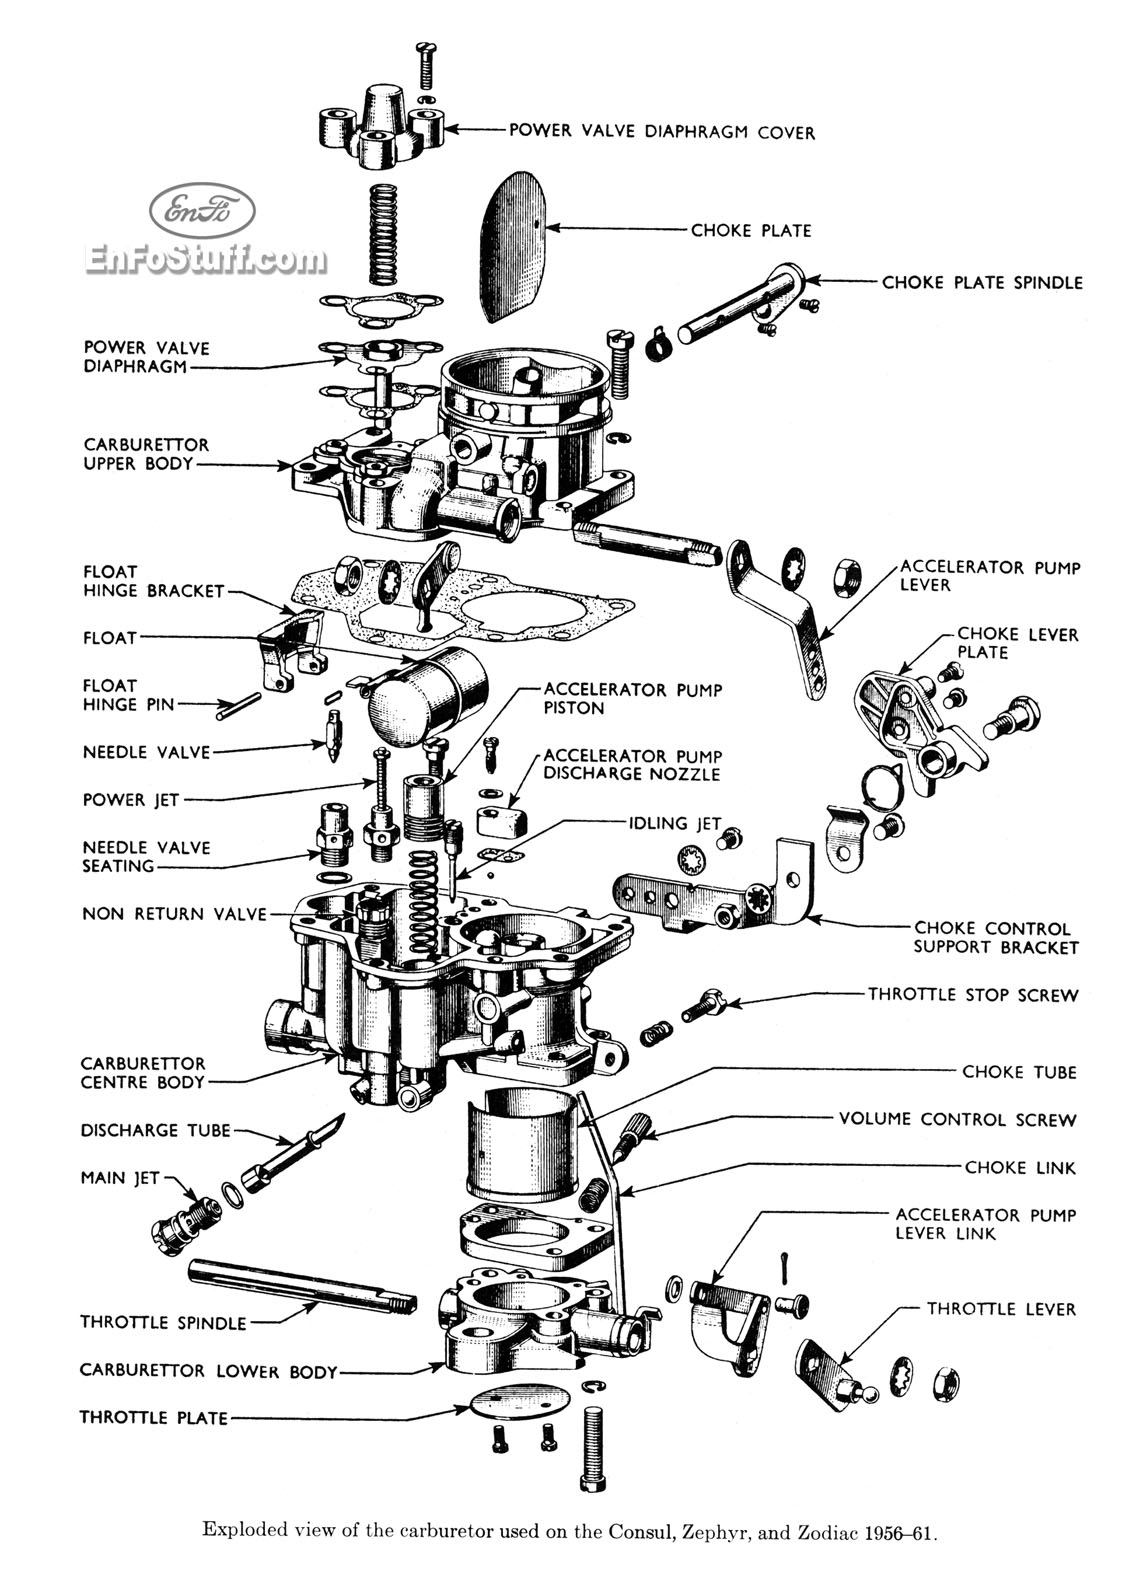 Carburetor Diagram For Ford Zephyr And Zodiac 1956